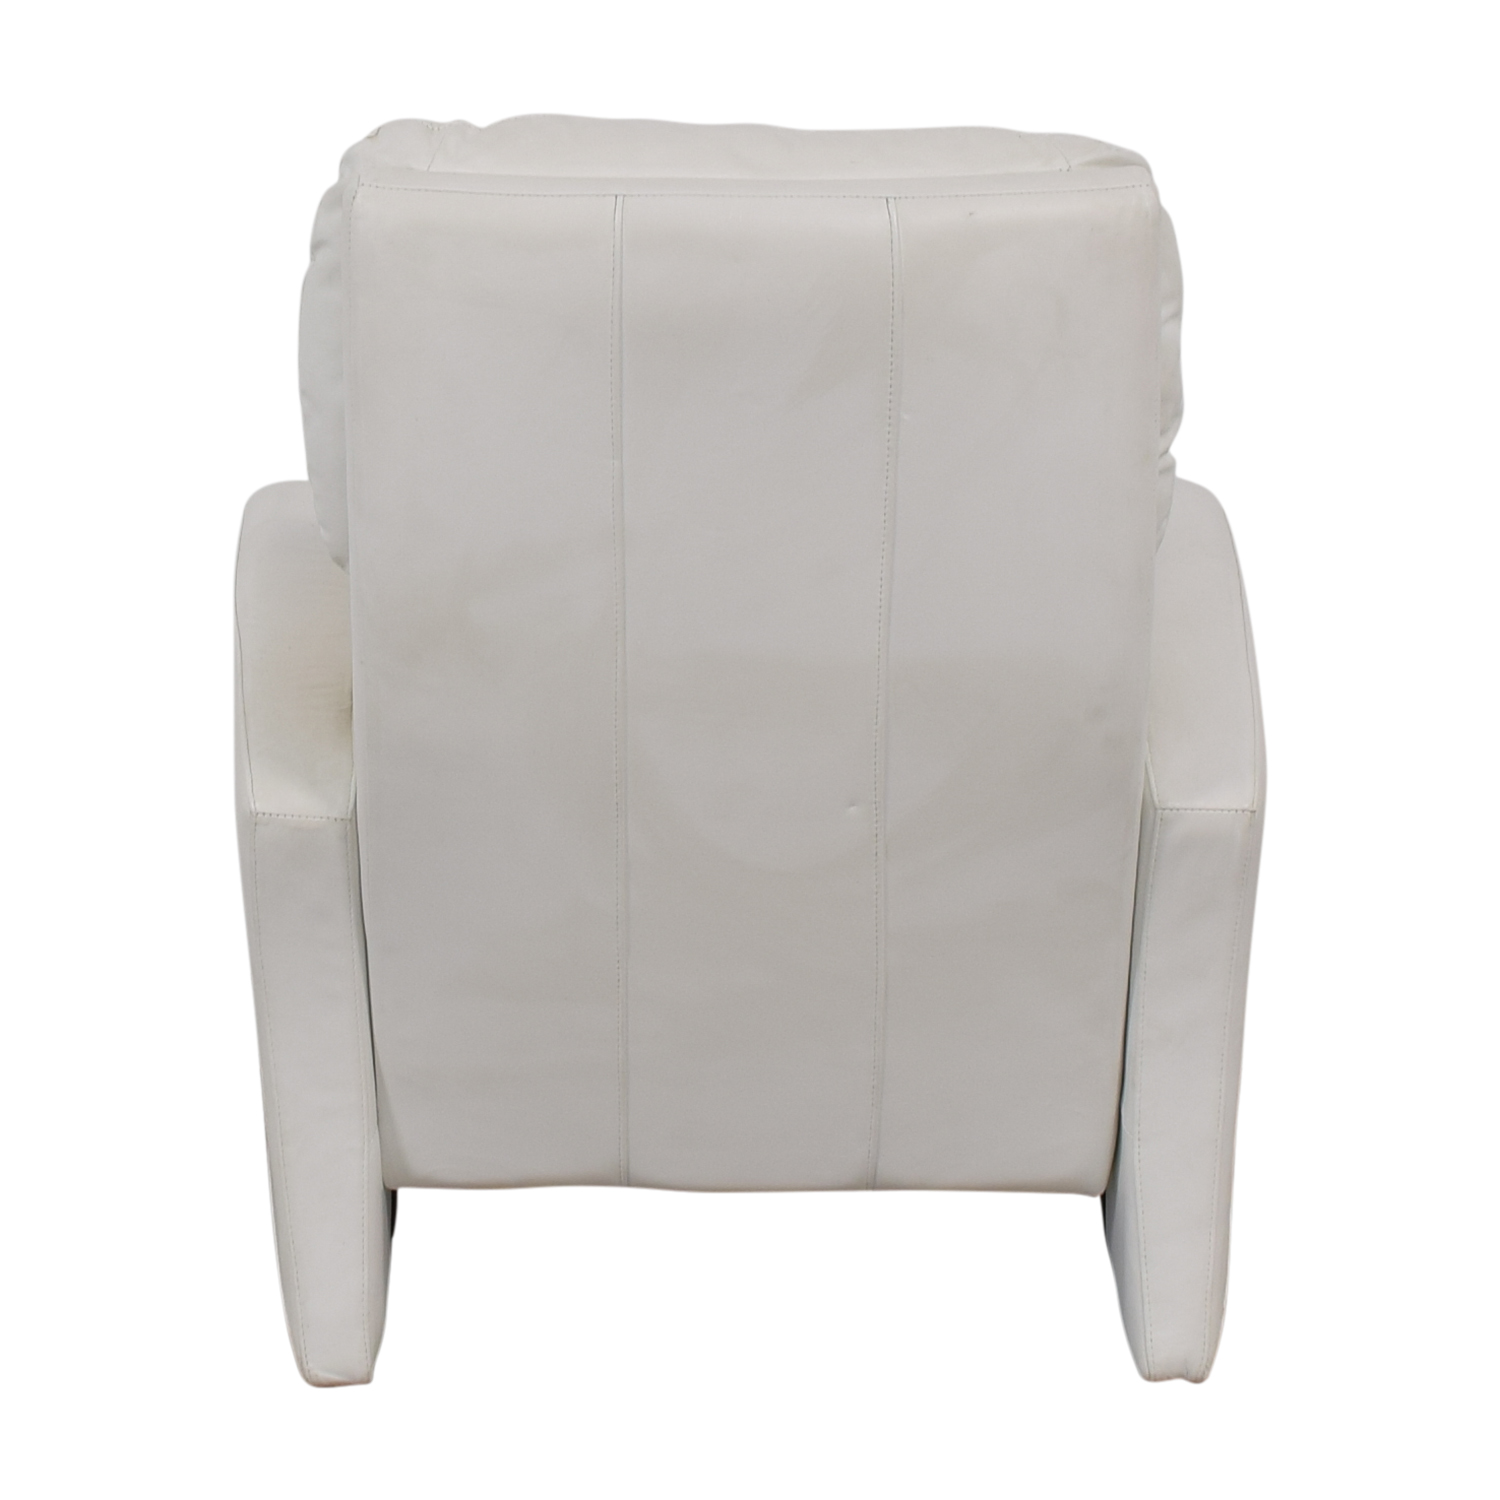 buy American Leather American Leather White Leather Recliner online